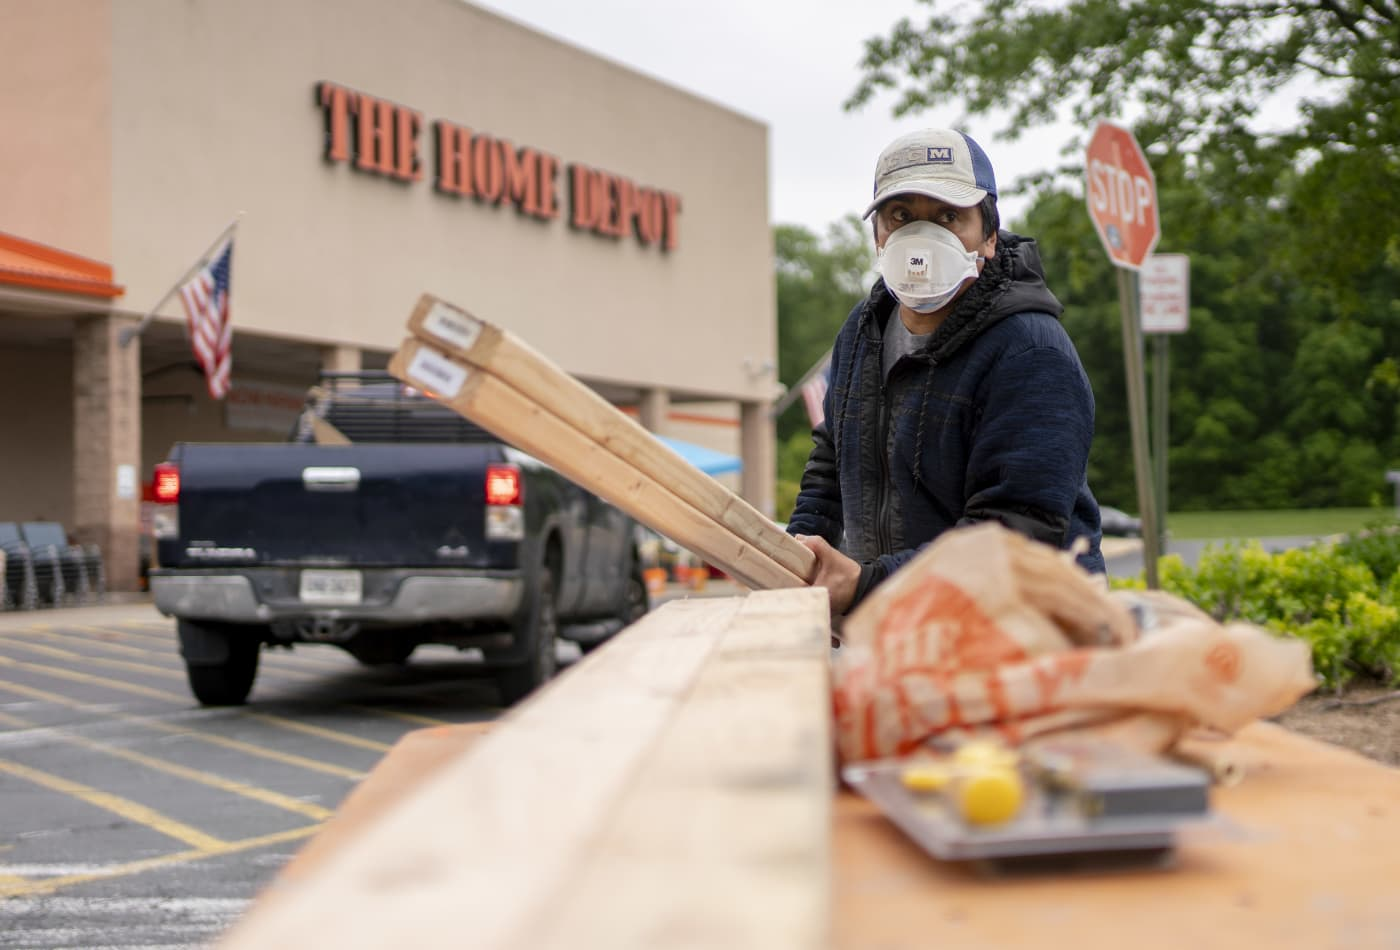 Oppenheimer downgrades Lowe's and Home Depot, says 'post-pandemic reset' coming for home improvement